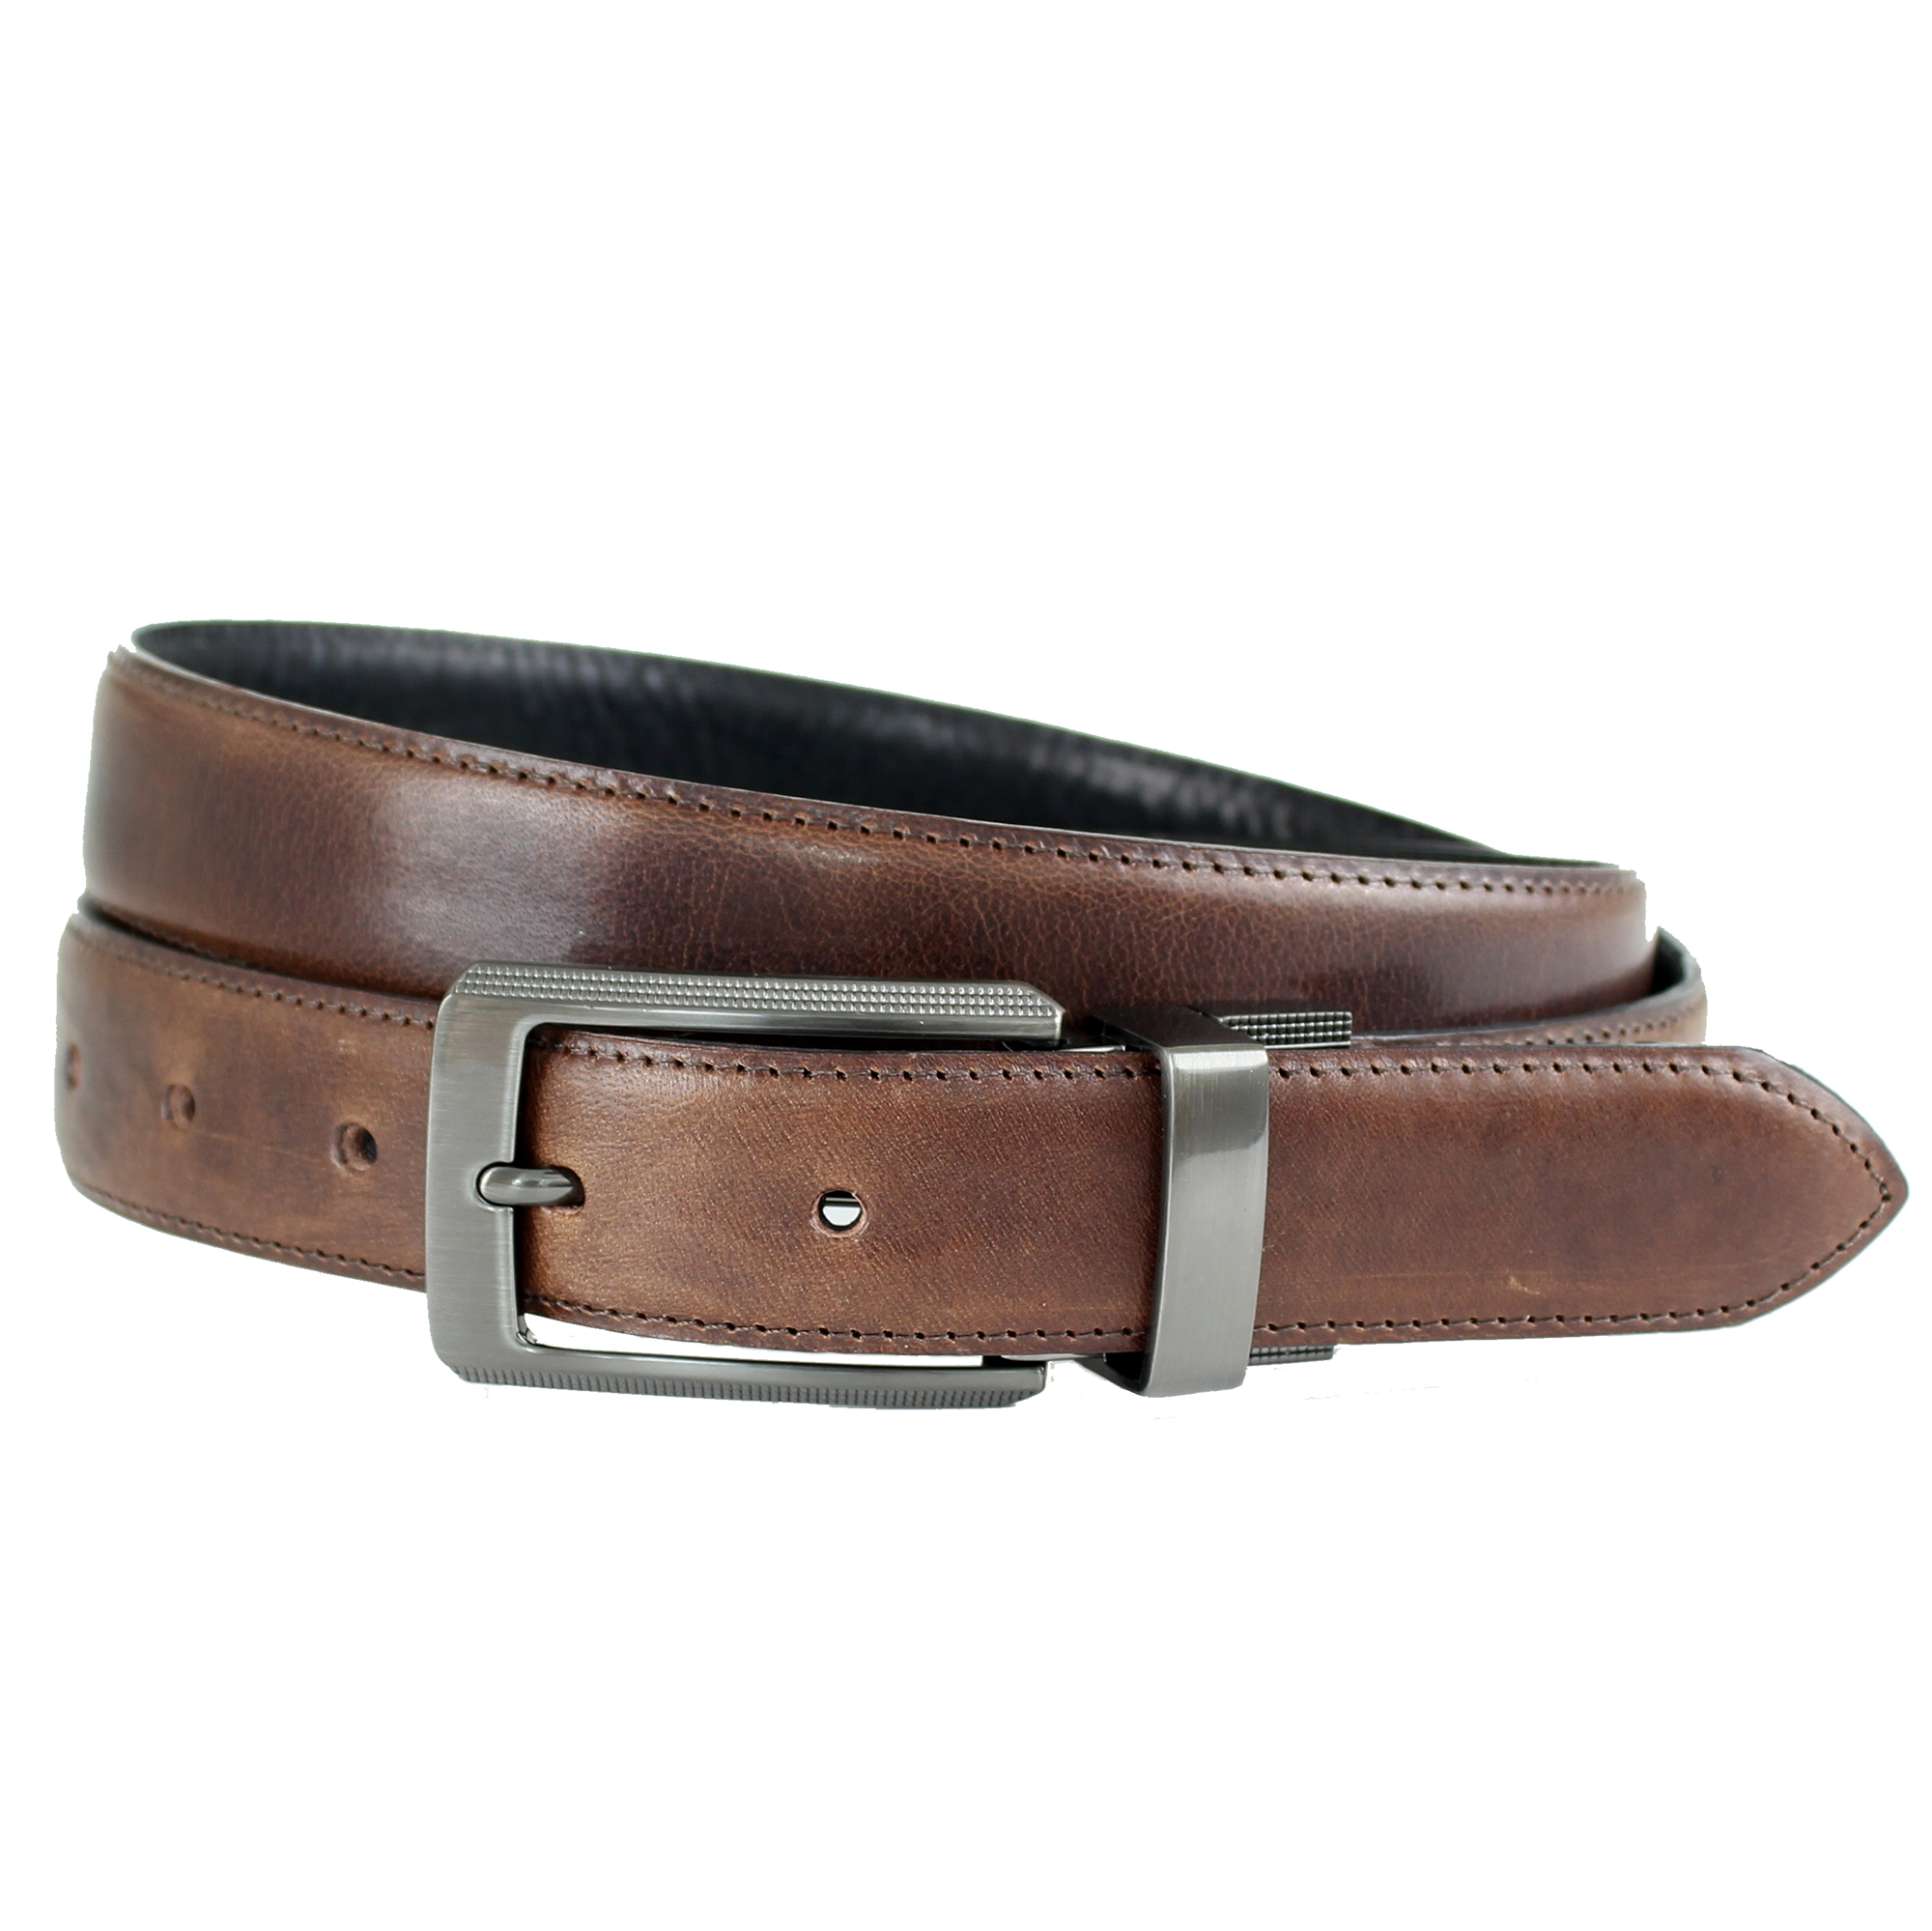 Men's Belts. filter by Color Black Blue Brown Grey Green Red White Beige Size 33 IN 35 IN 37 IN 39 IN 43 IN Buckle Men's Reversible Leather Belt and Two Buckles Gift Set (2 colors) $ New Men's Two Leather And Woven Belt Straps And Two Buckles Travel Kit $